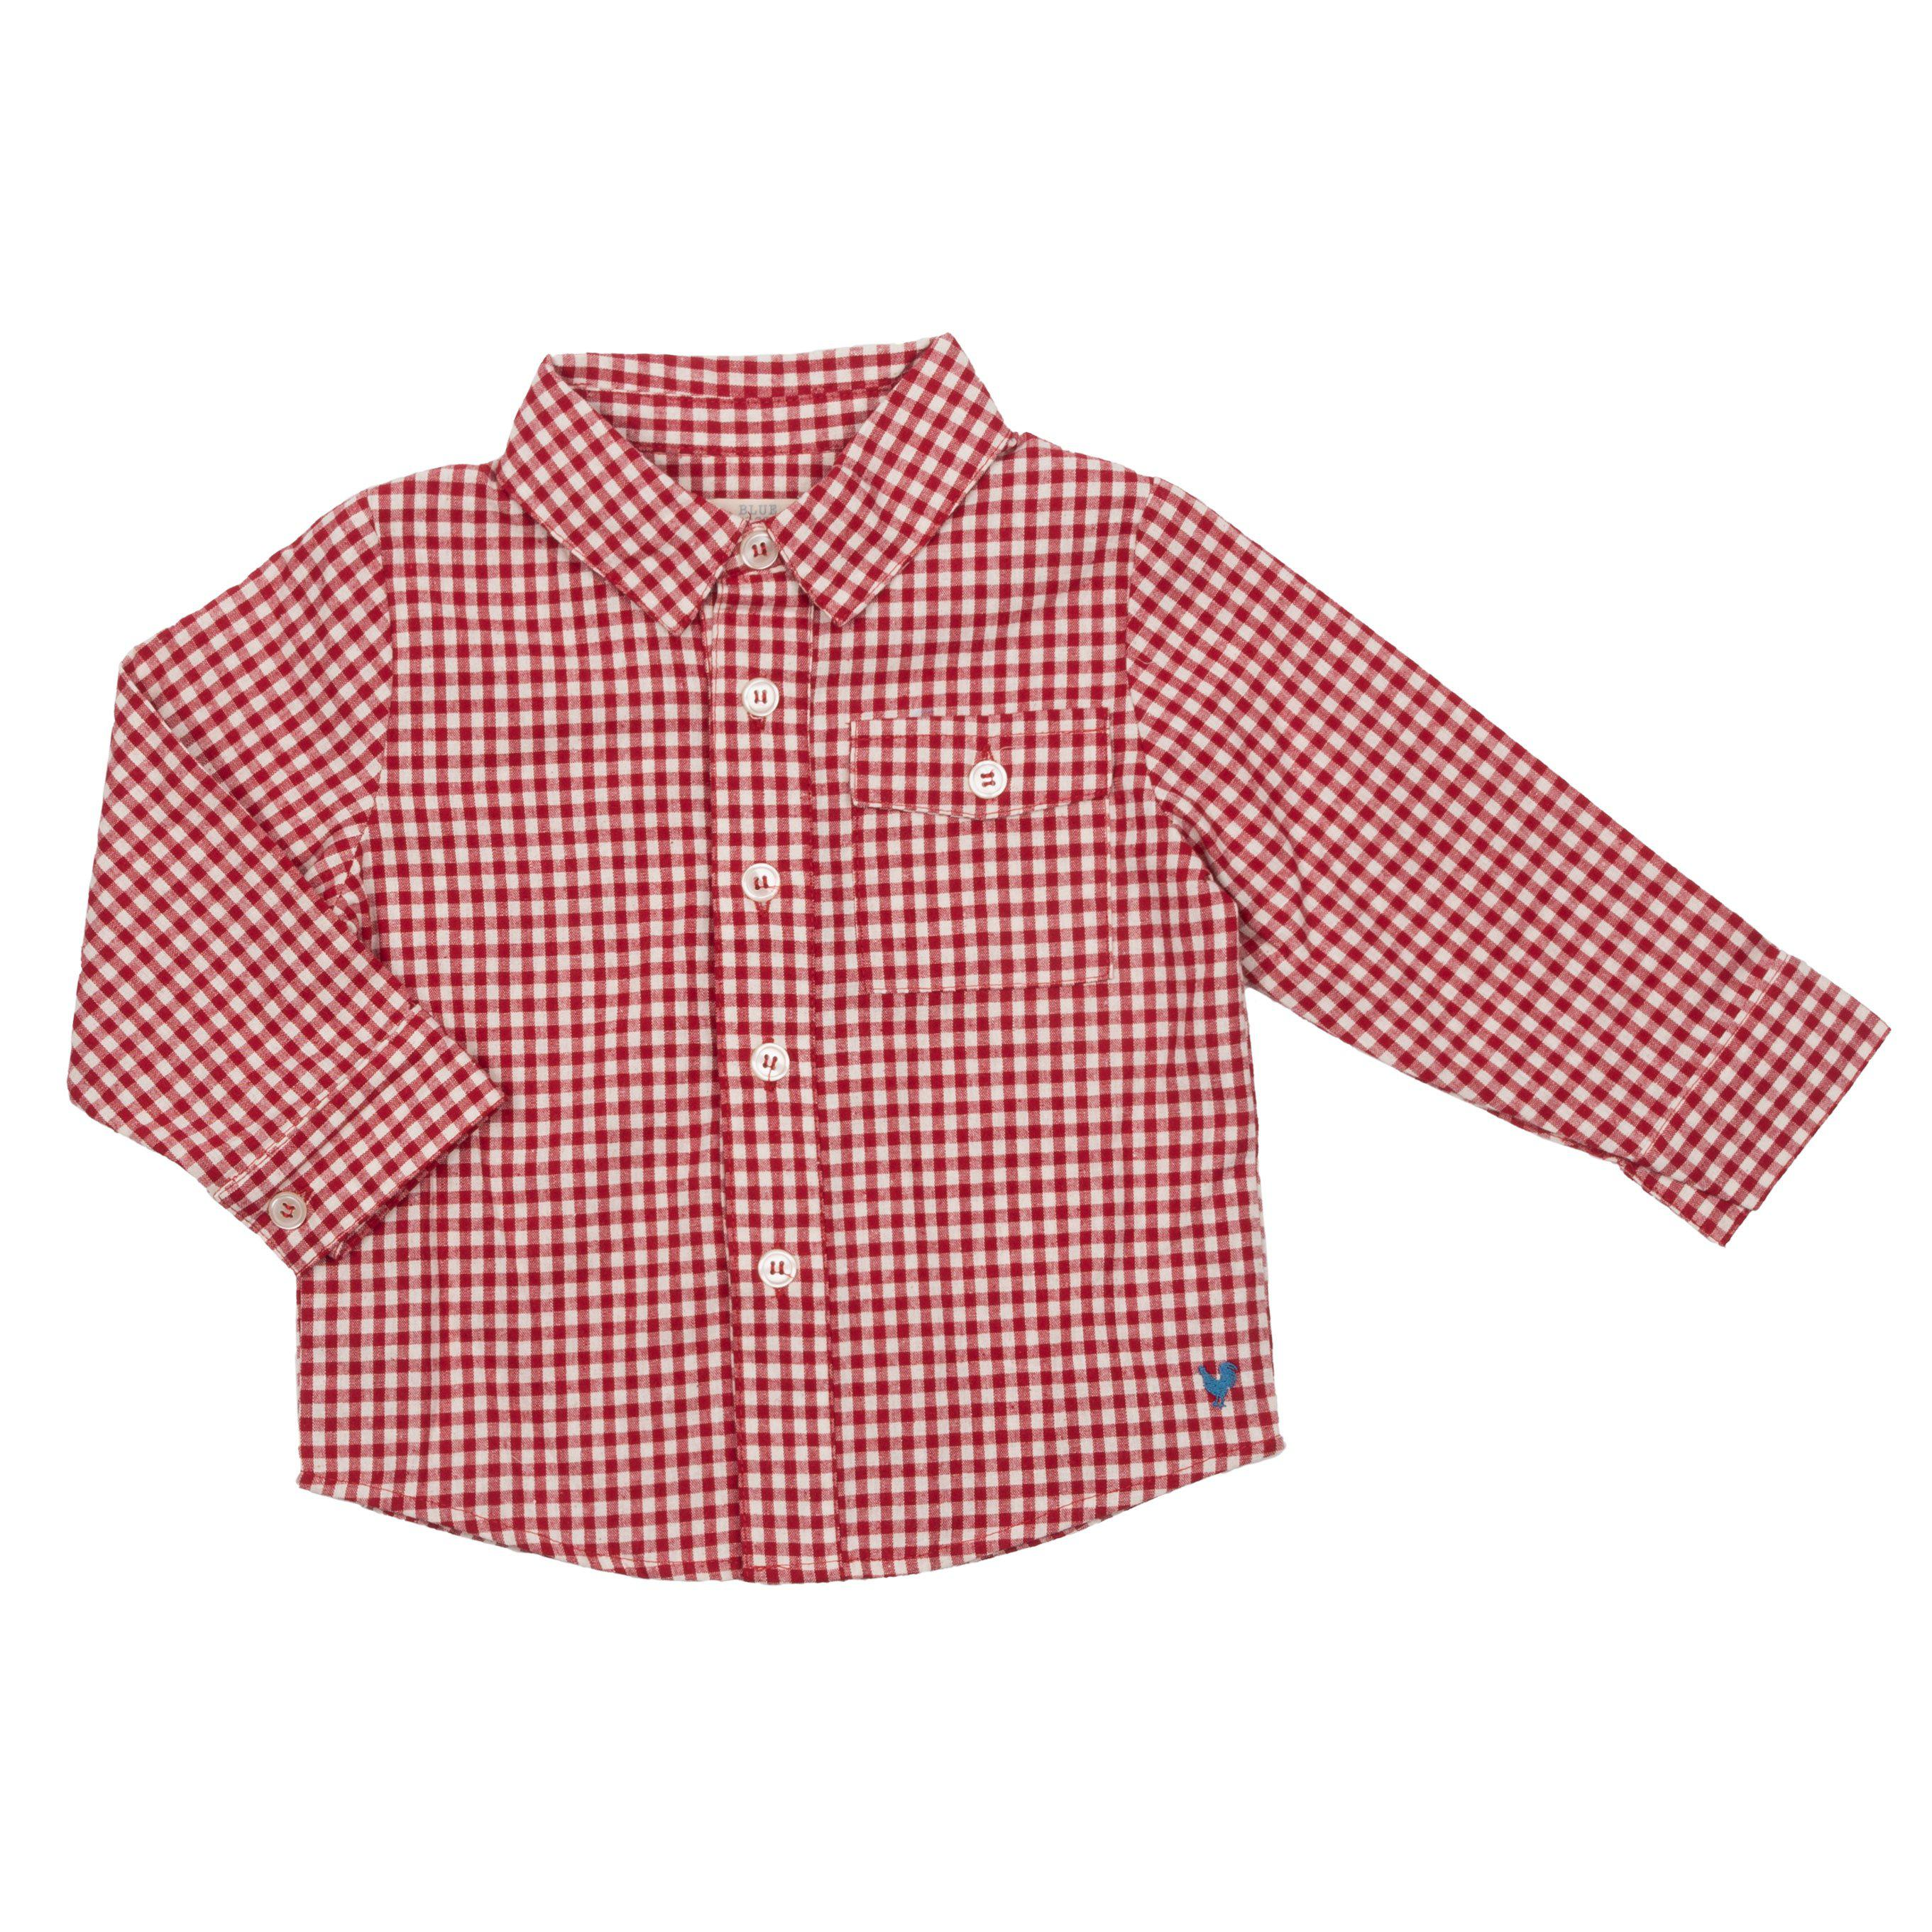 Pink Chicken Jack Shirt 2y red gingham - 20esbr100a